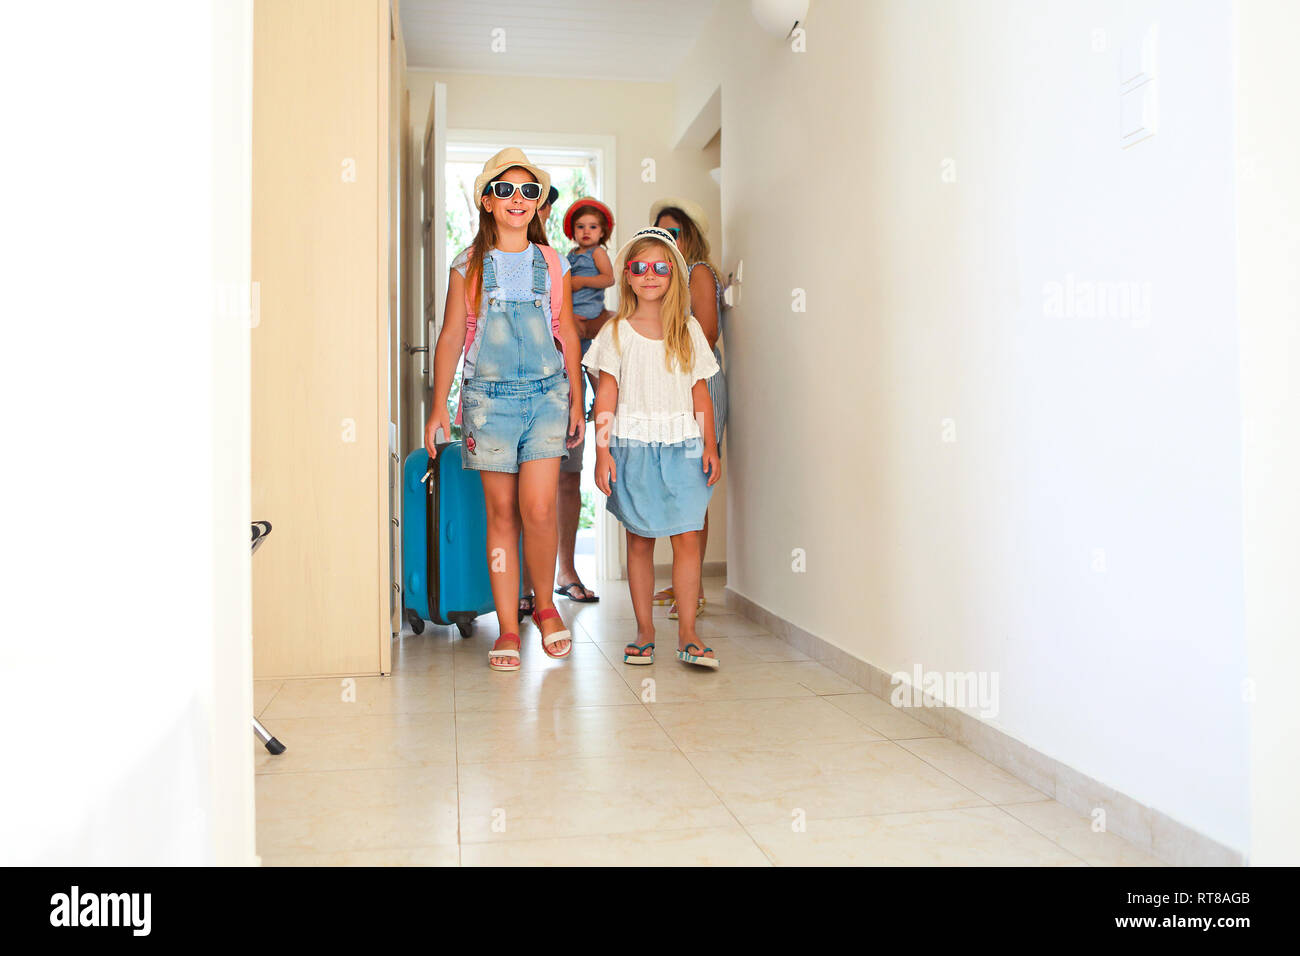 Young family with three kids with luggage in hotel room - Stock Image